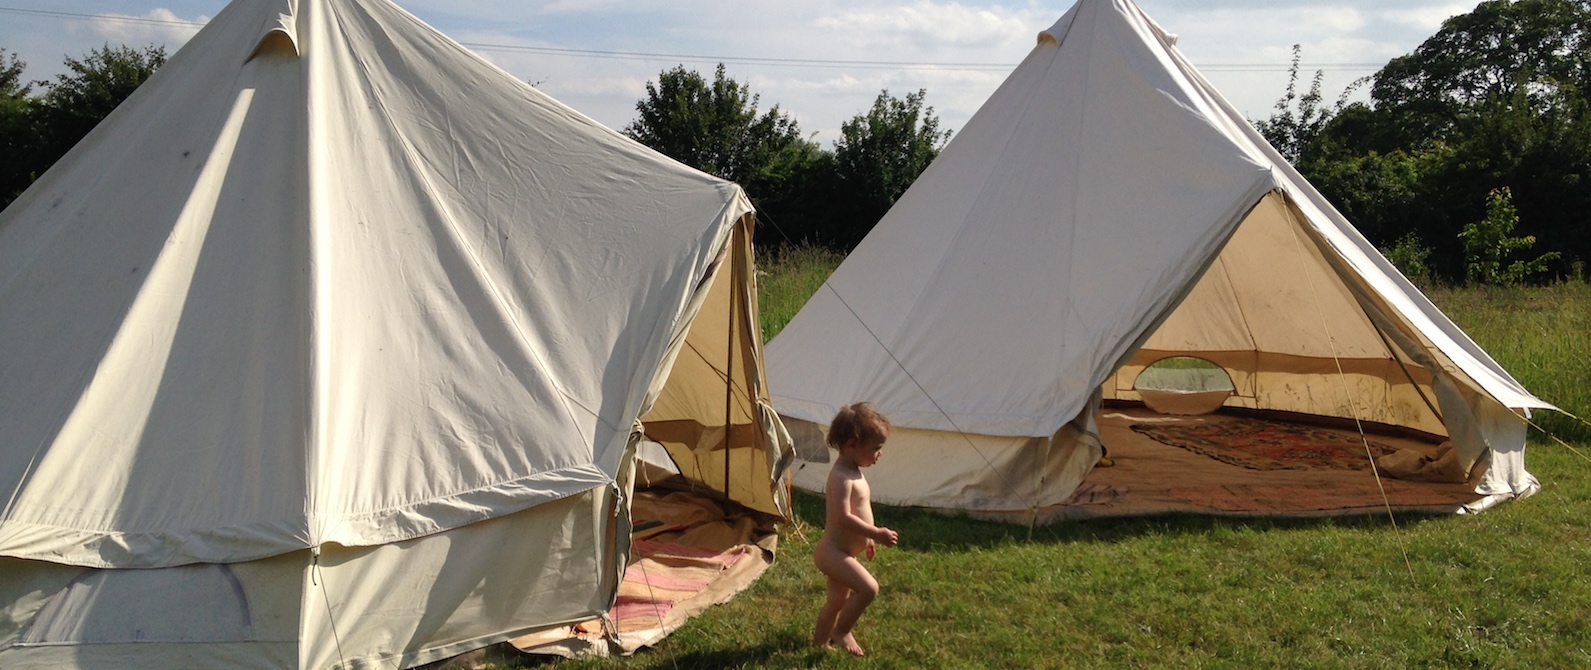 By the bell tent